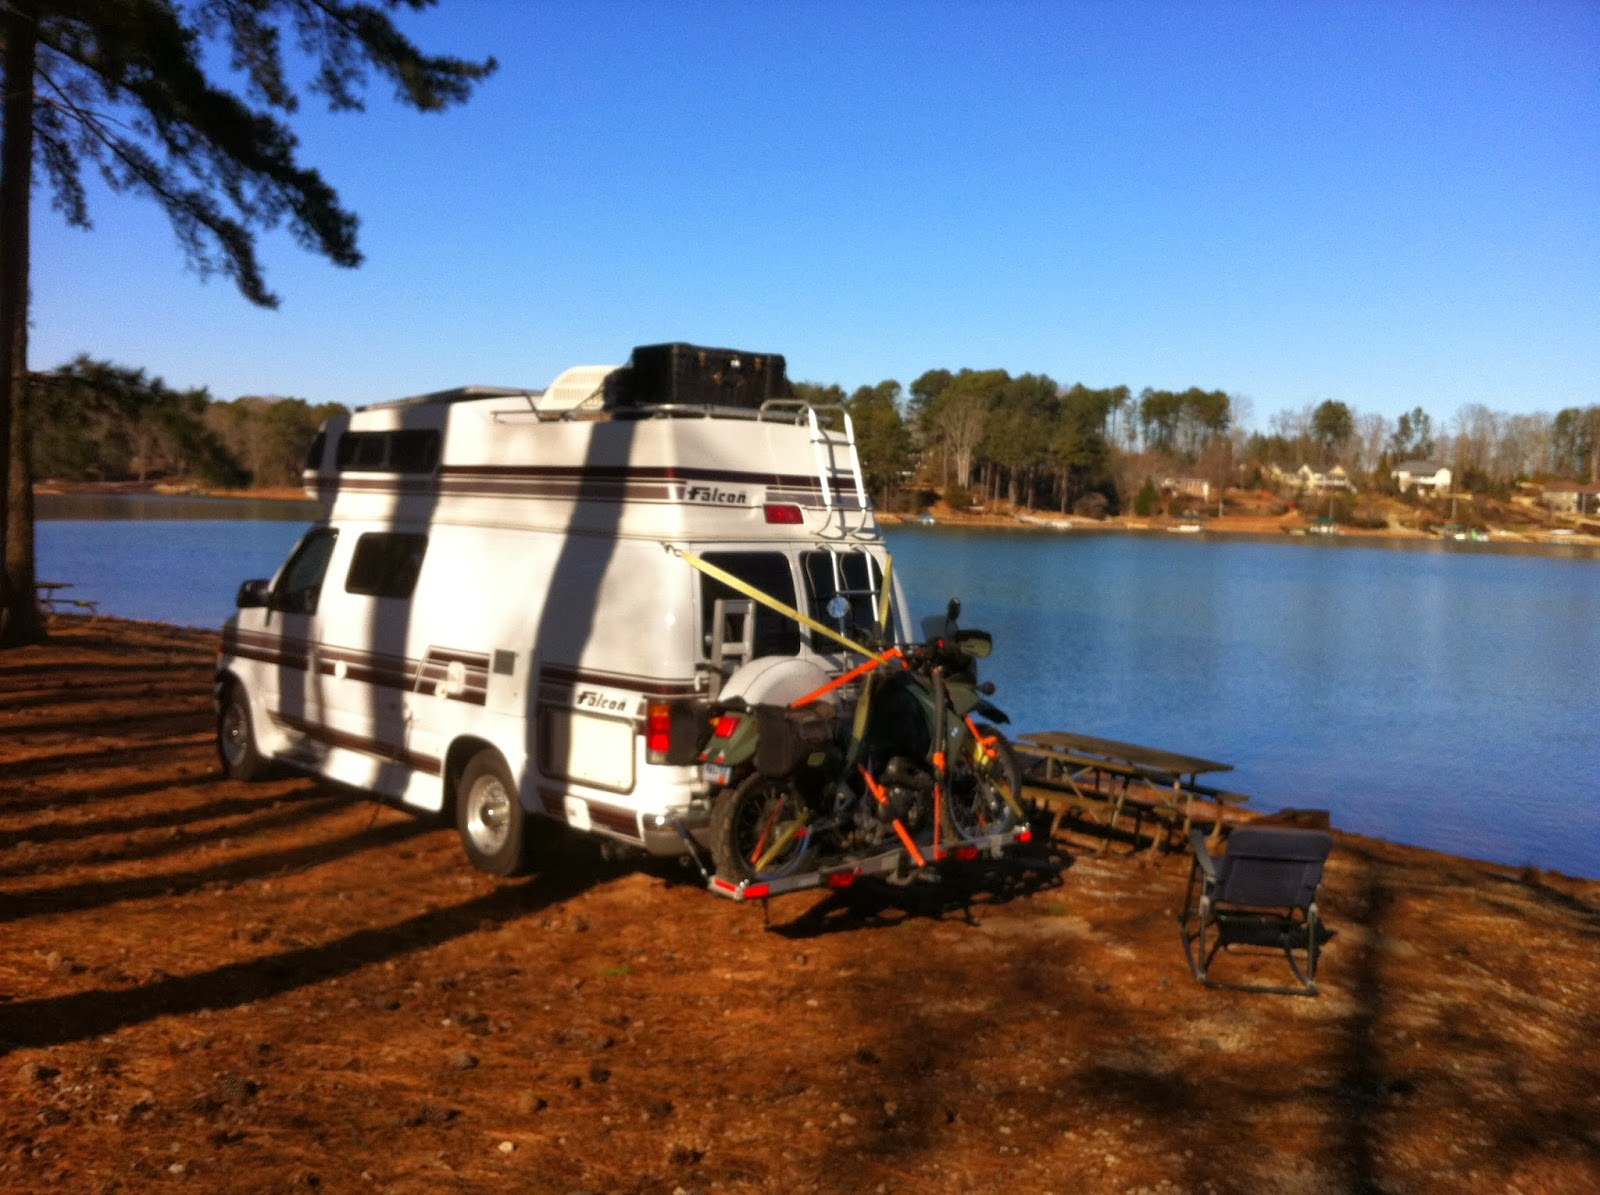 Our Fantastic Falcon Voyage Camping At Lake Keowee In